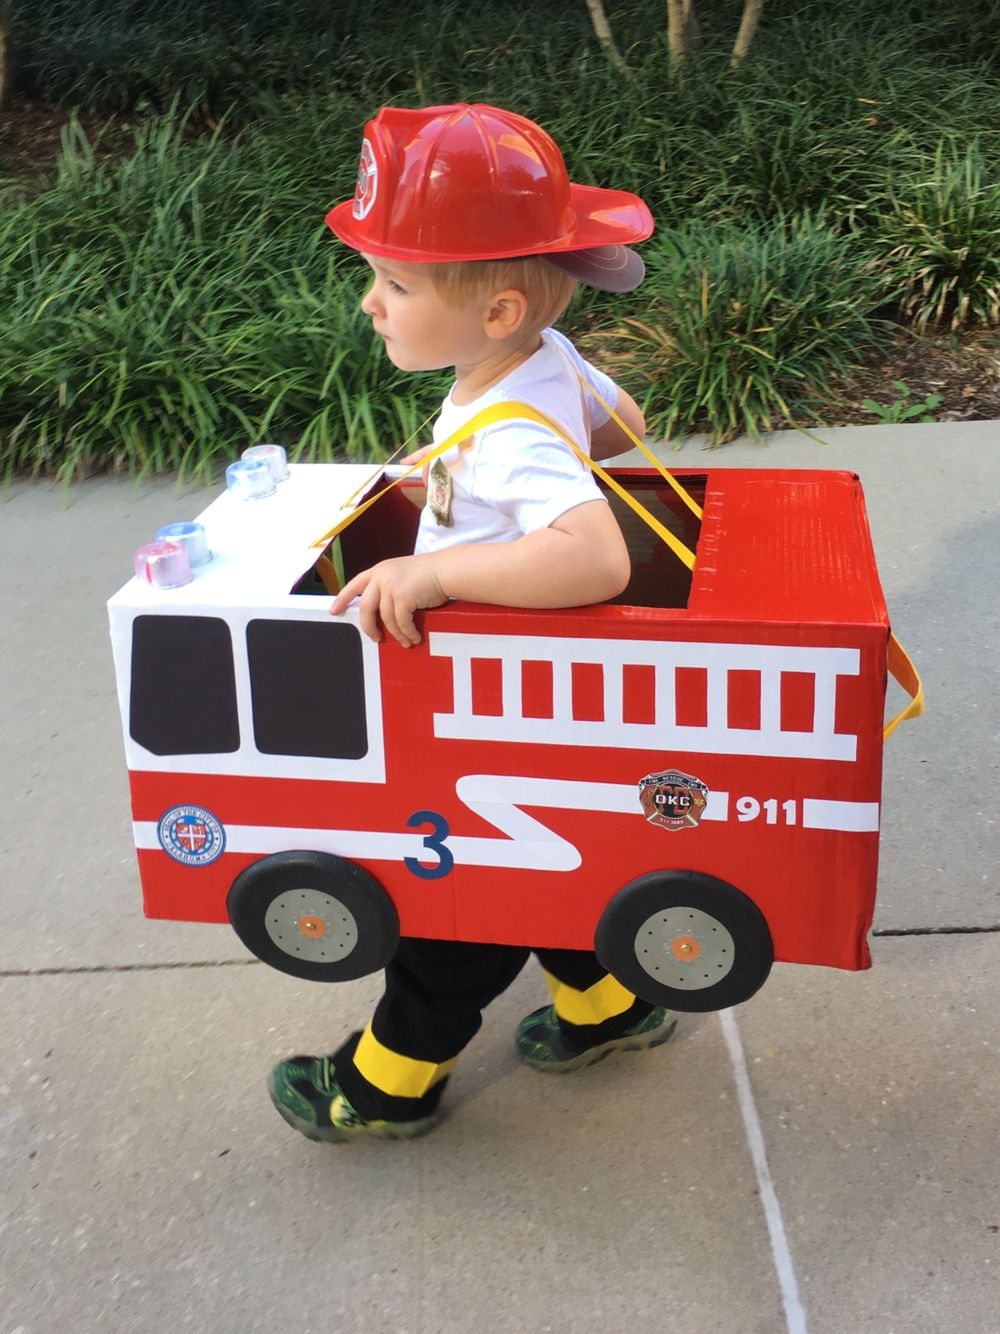 toddler preschool boy fireman fire truck halloween costume cardboard box fire truck - Halloween Costume Fire